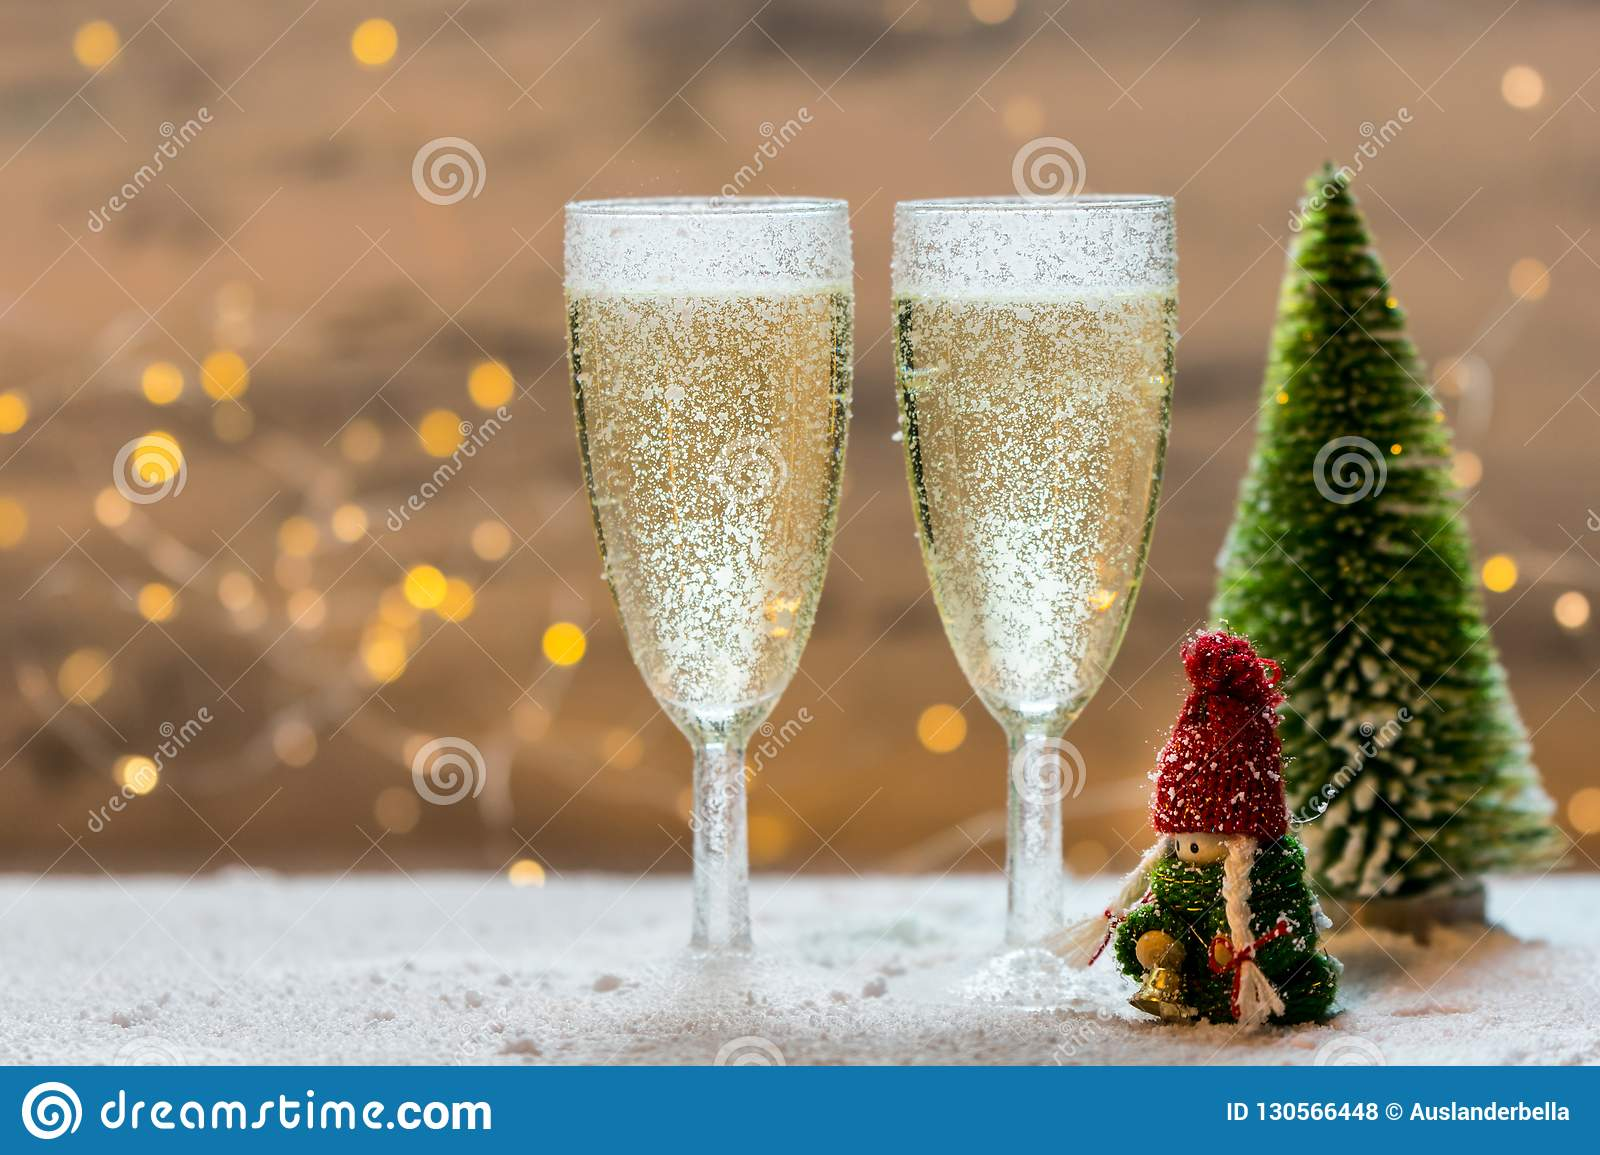 Romantic, white and golden winter background with two glasses of champagne